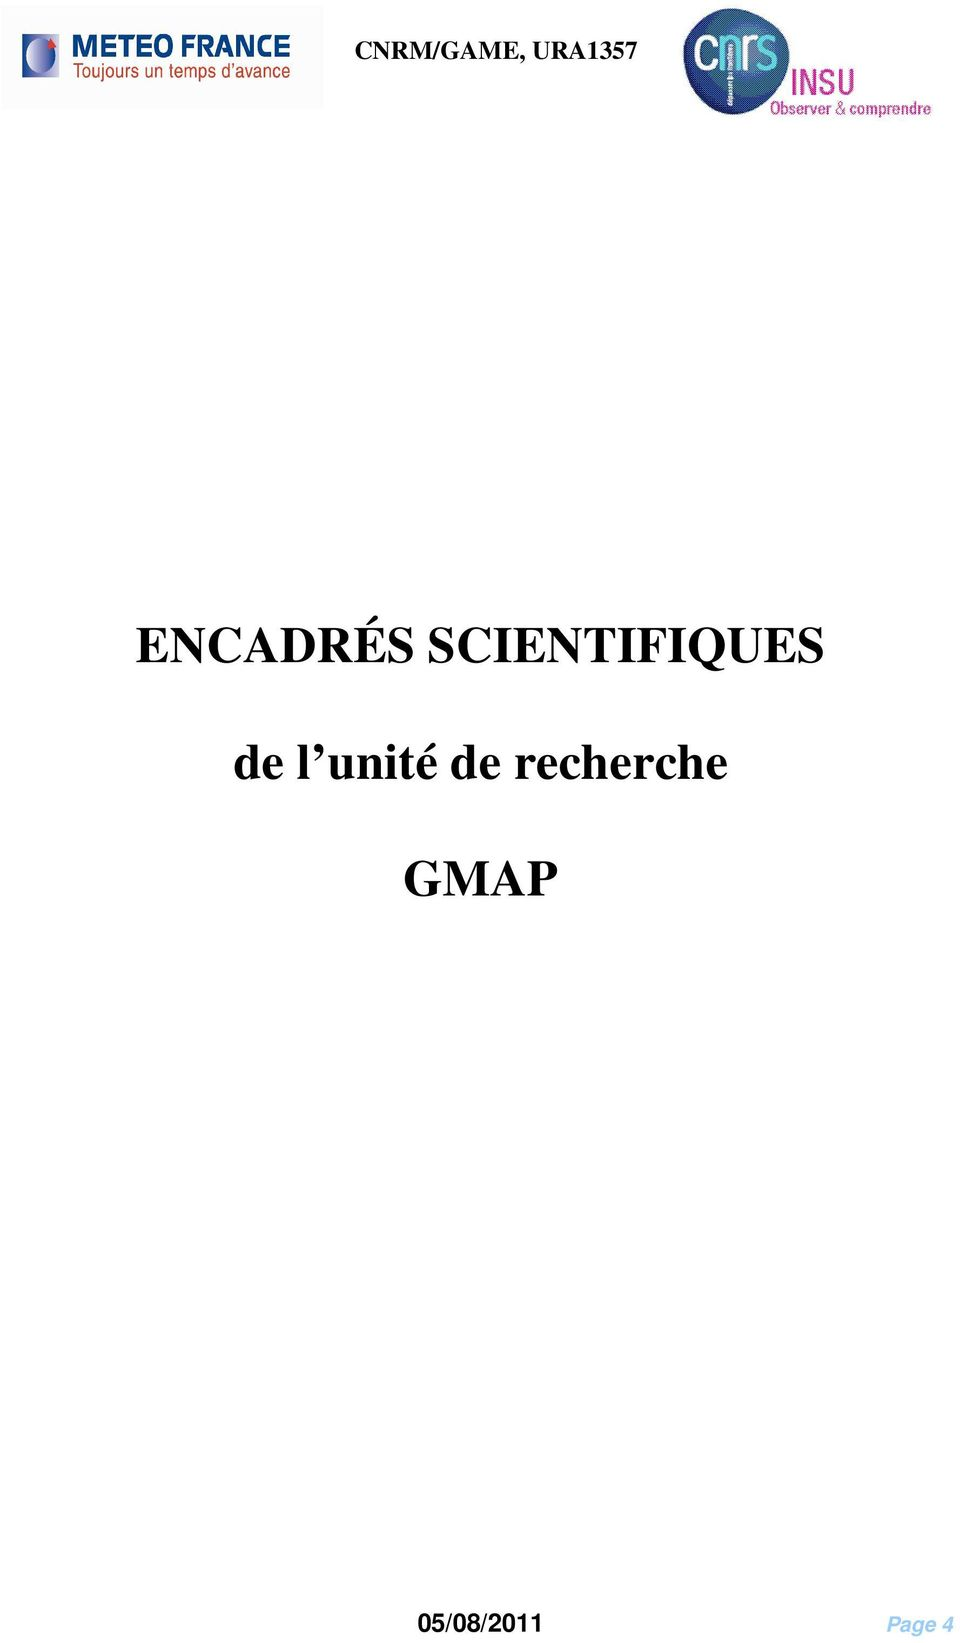 SCIENTIFIQUES de l